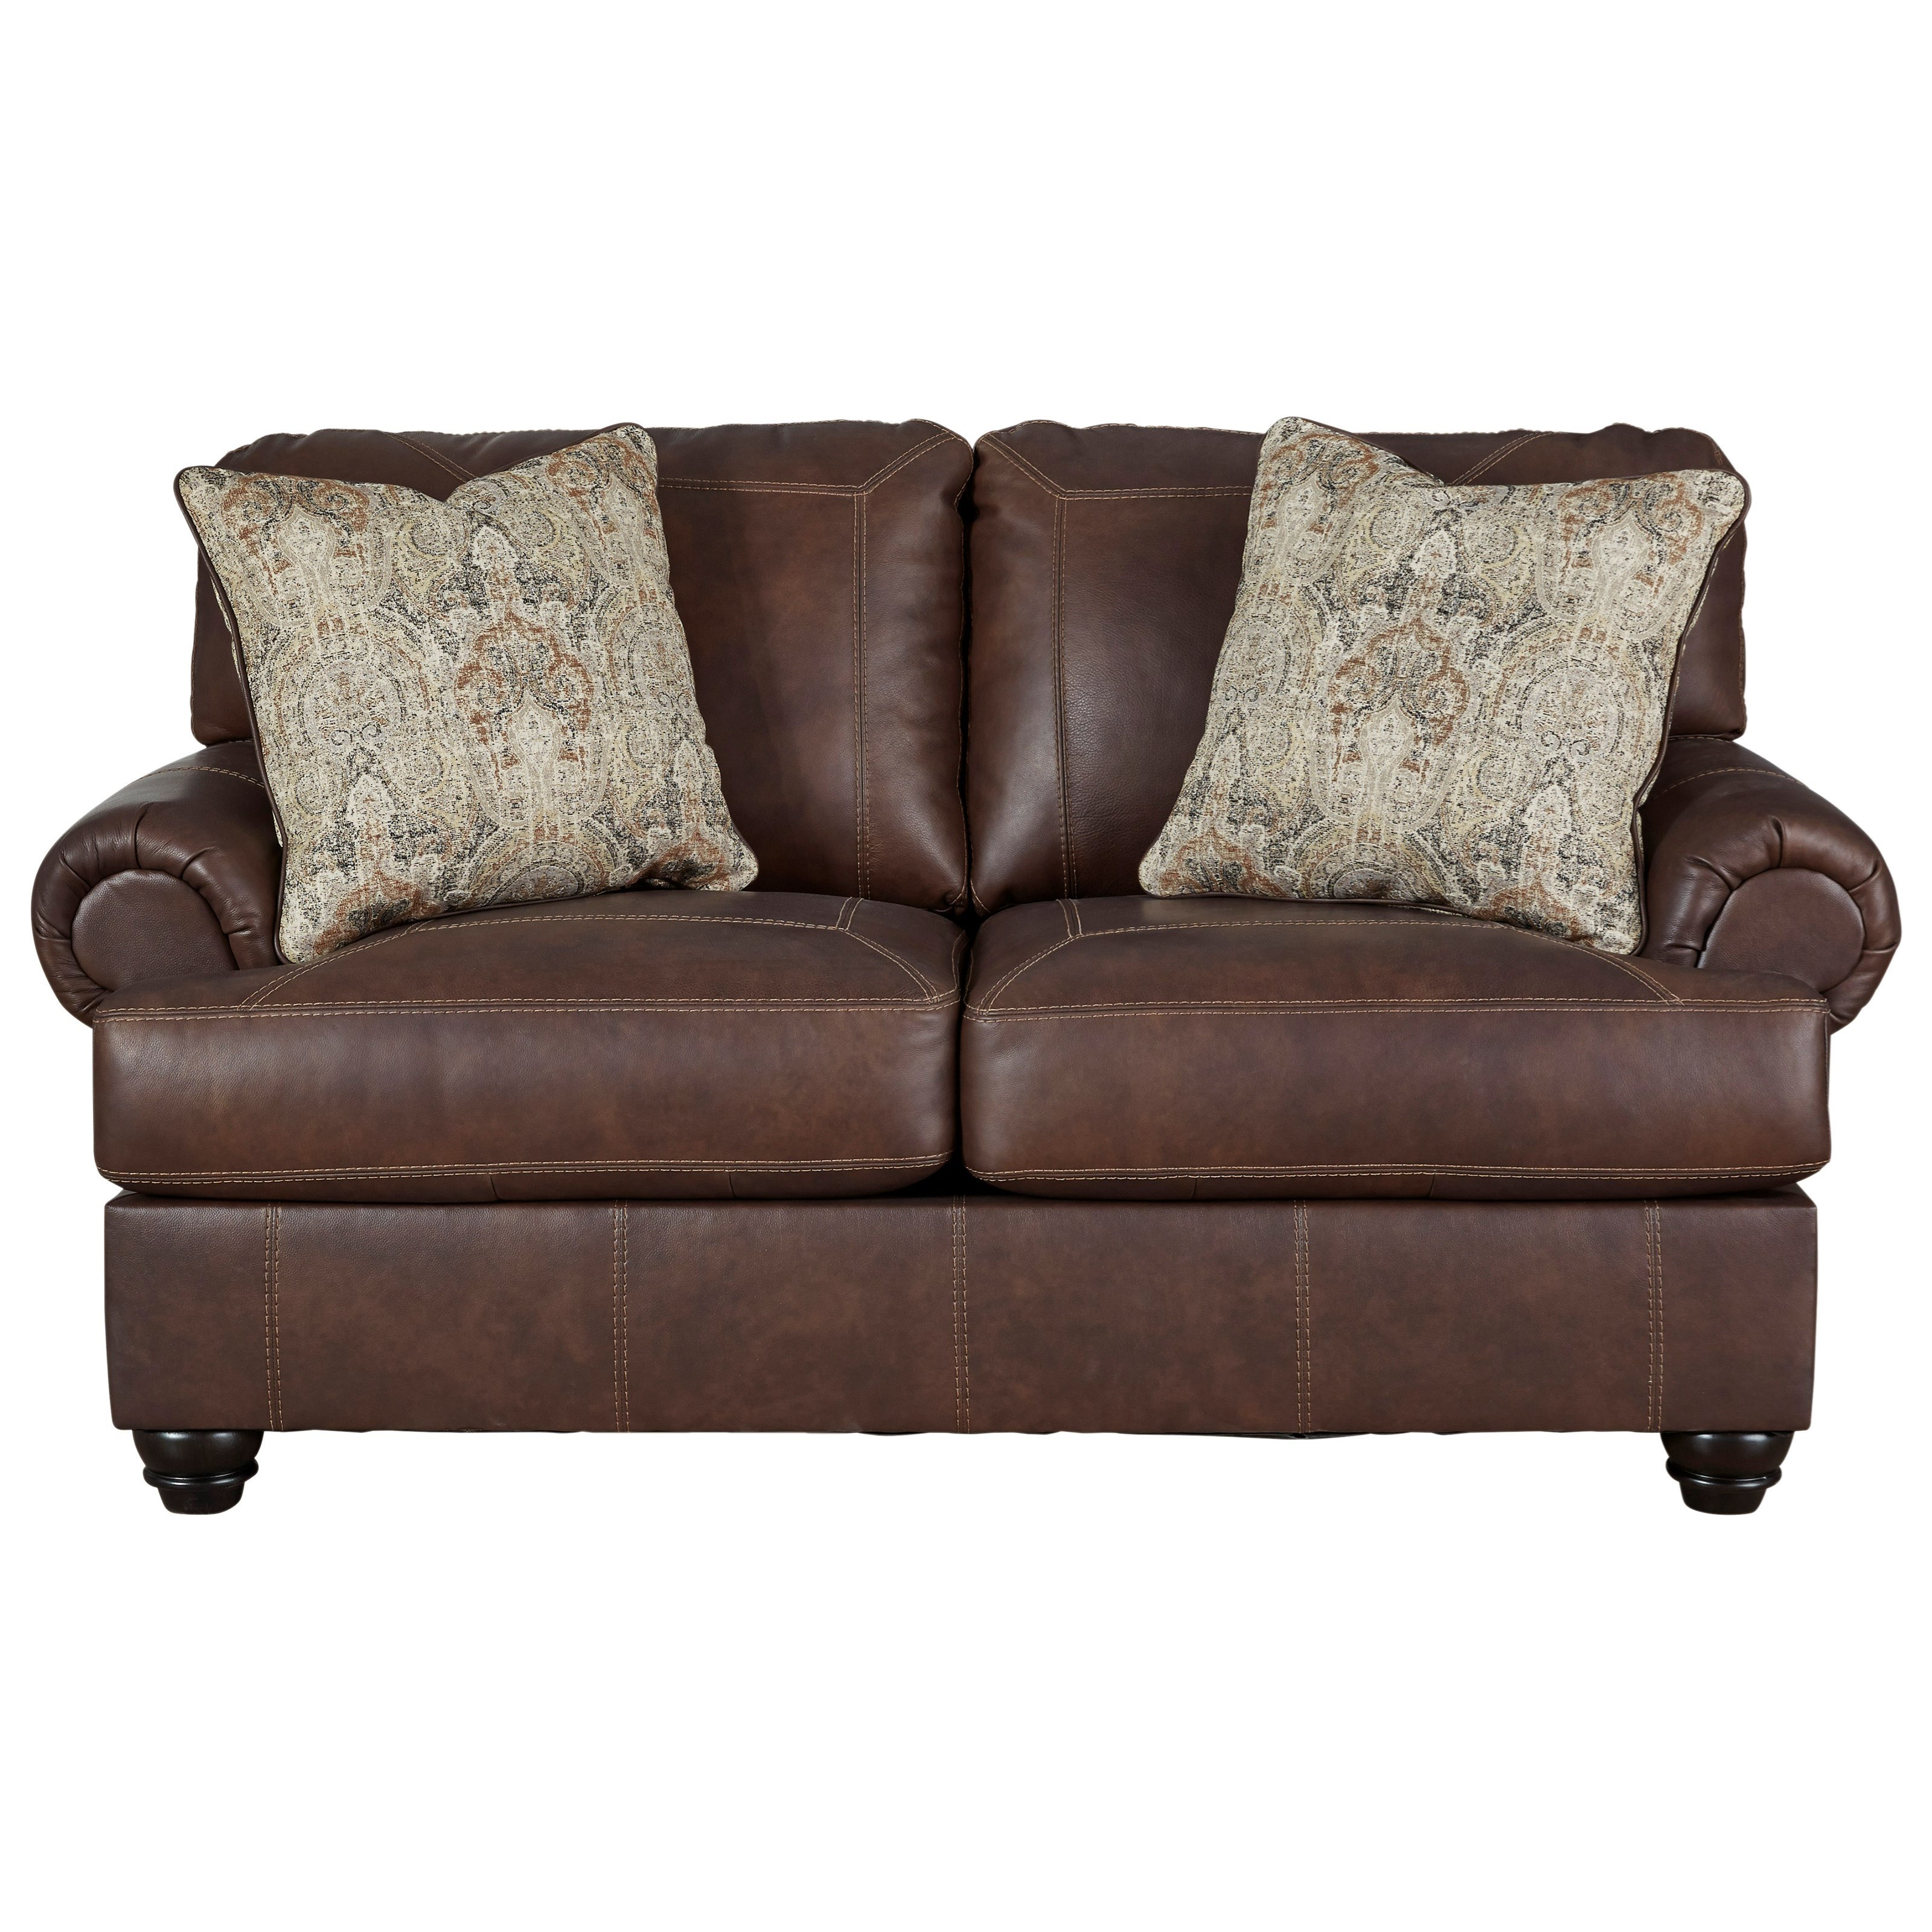 Bearmerton Loveseat by Signature Design by Ashley at Household Furniture